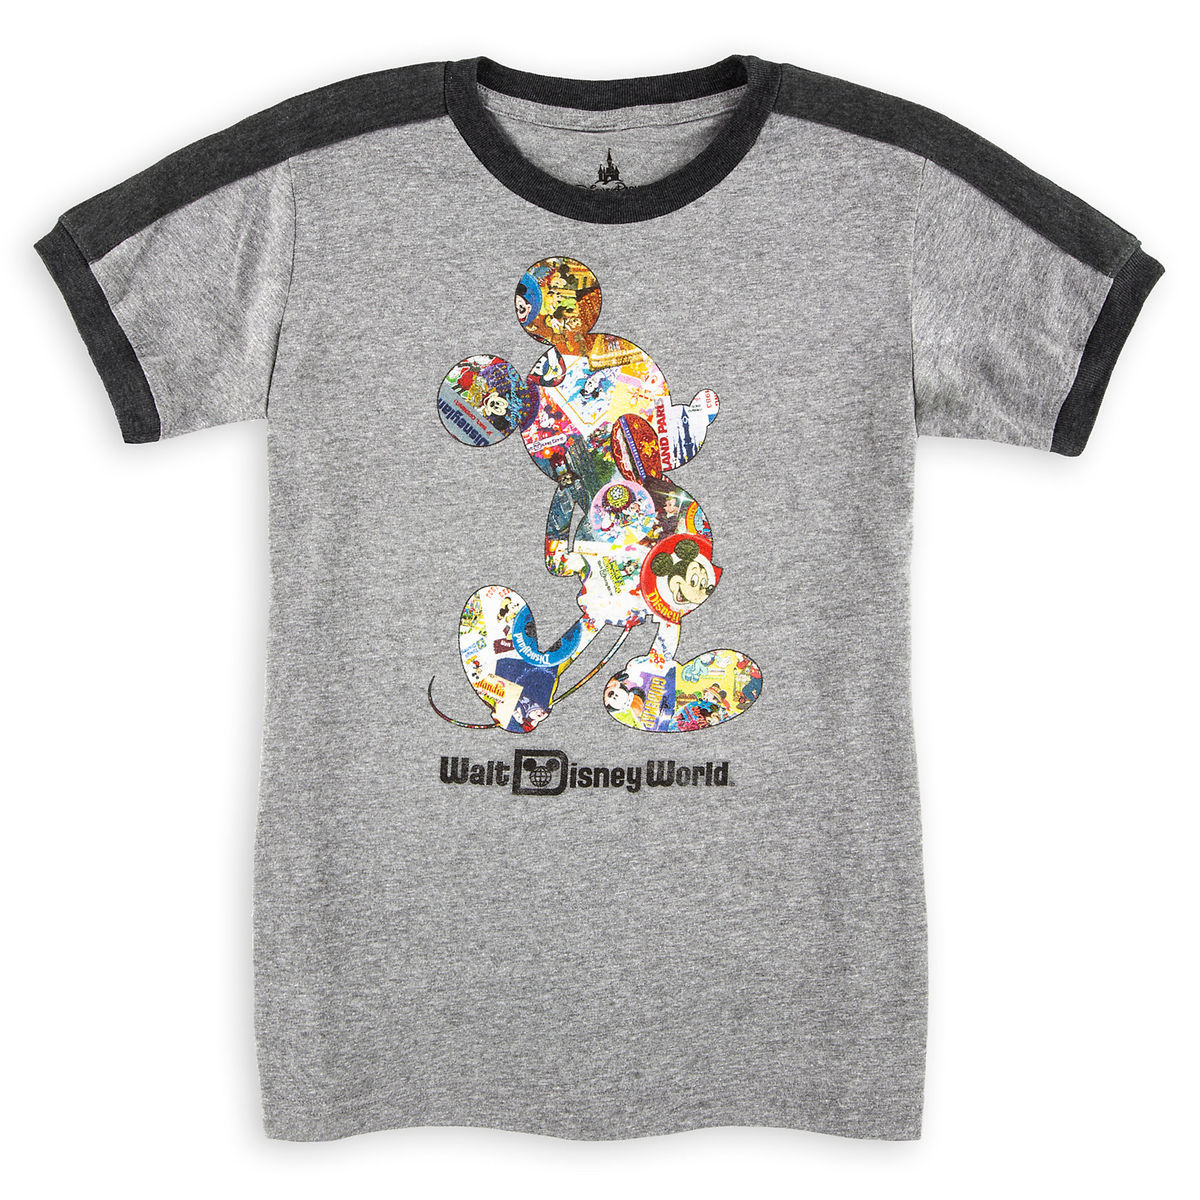 f35b6c653 Add to My Lists. Disney Child's Shirt - Mickey Mouse Ringer Tee